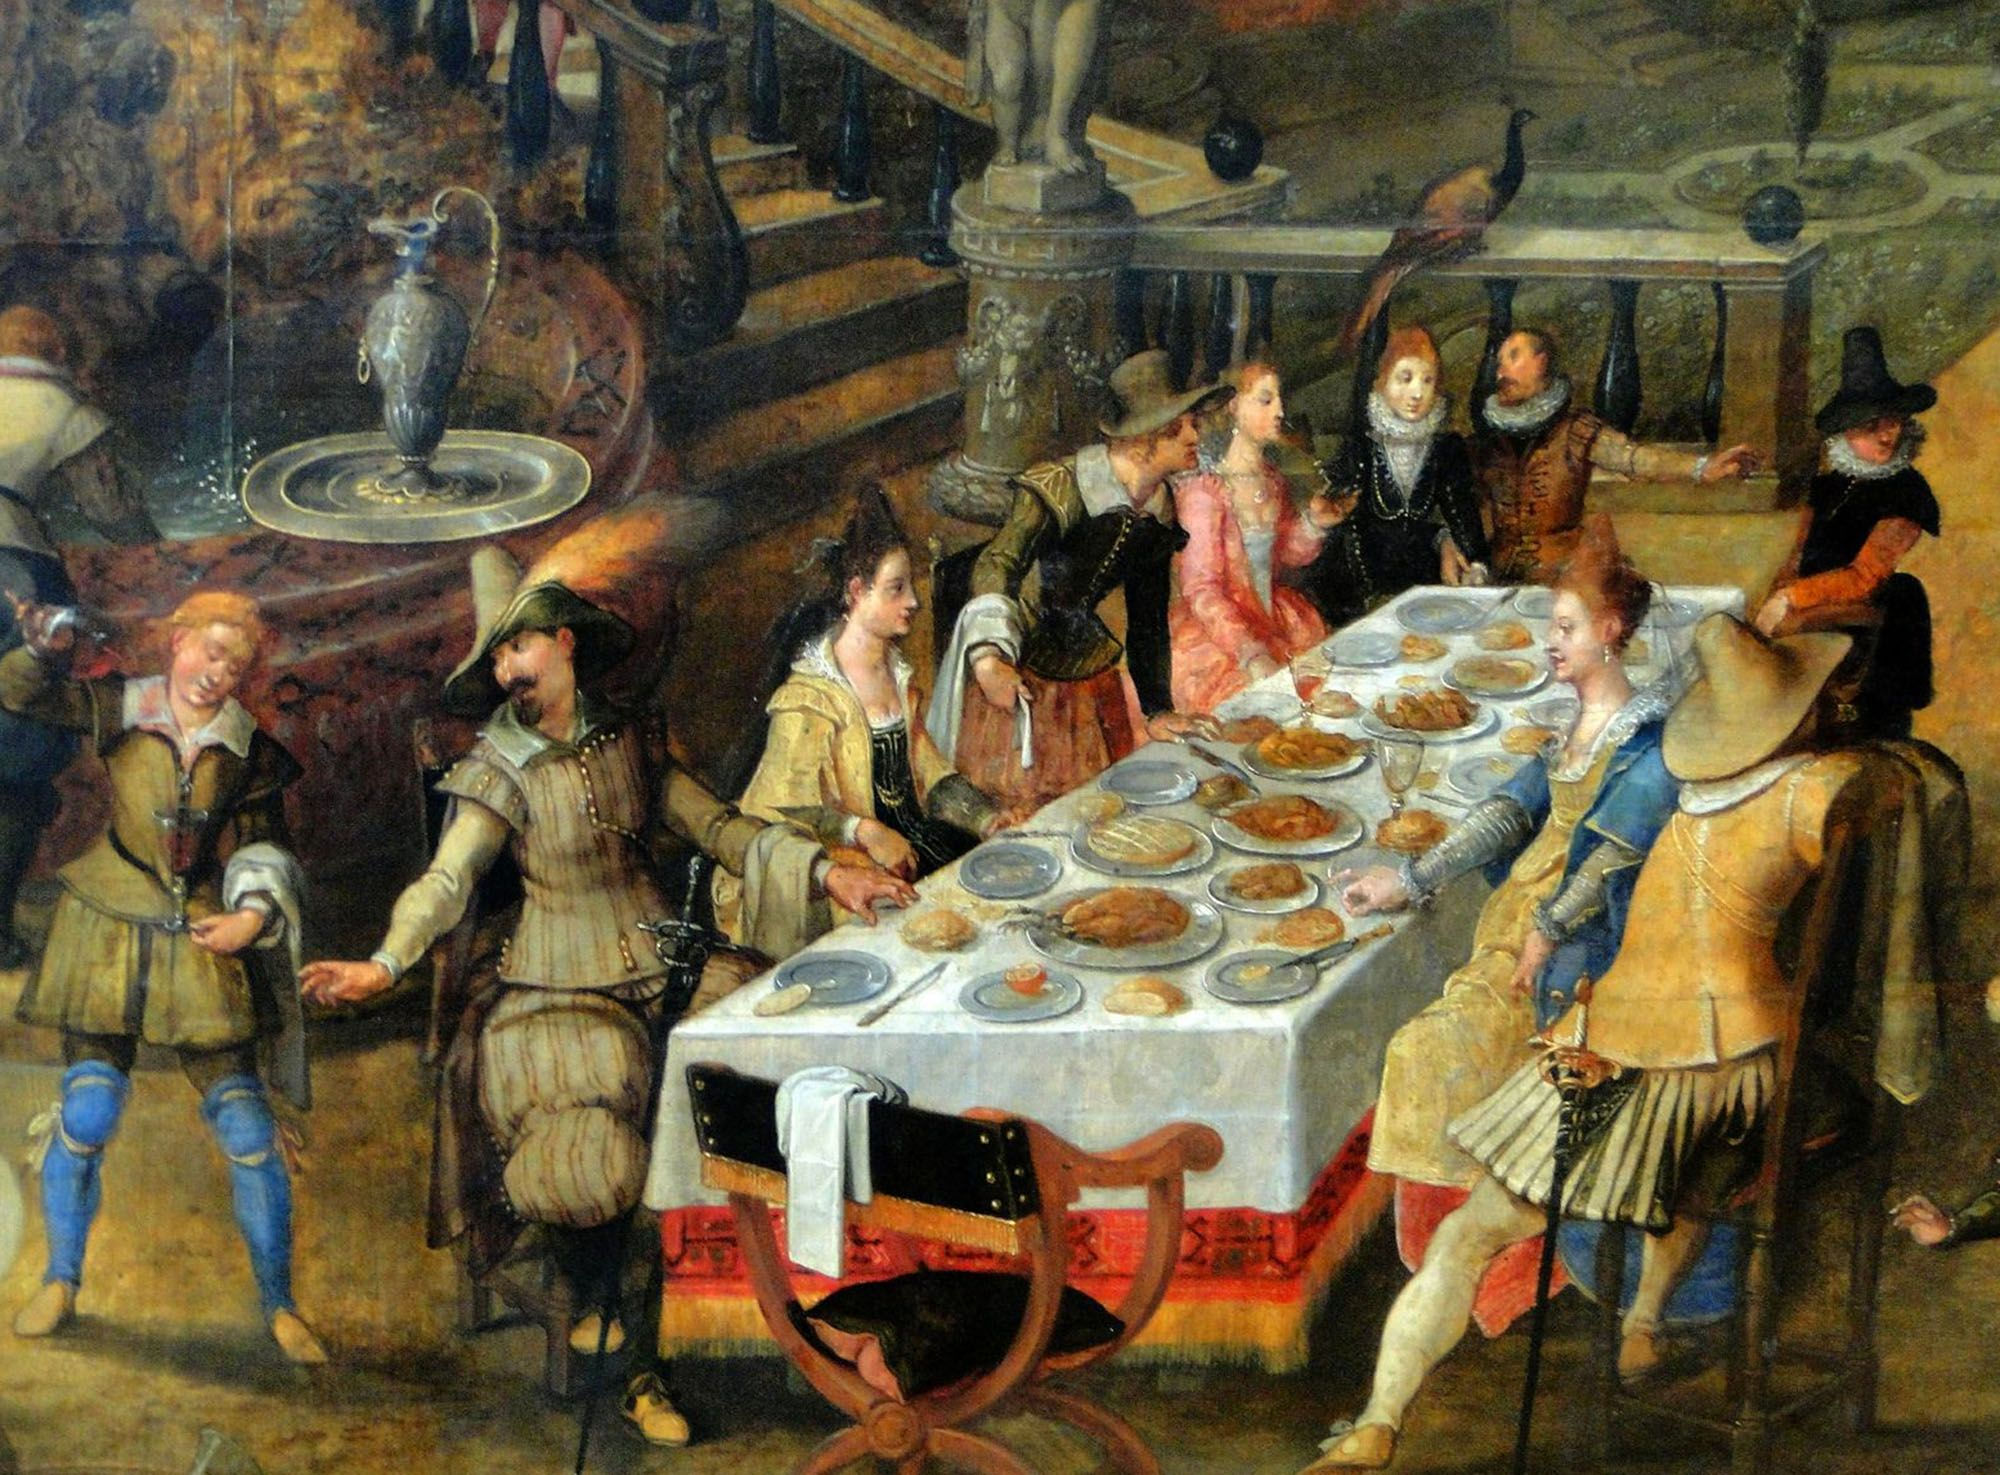 Most large feasts in the Renaissance had cooked swan and salmon. After the meal, hands were washed in a pool of lemon scented water. Spoons were used for soups, knives for meat and hands for everything else. Certain fingers were raised during dishes to allow clean fingers for the next dish.